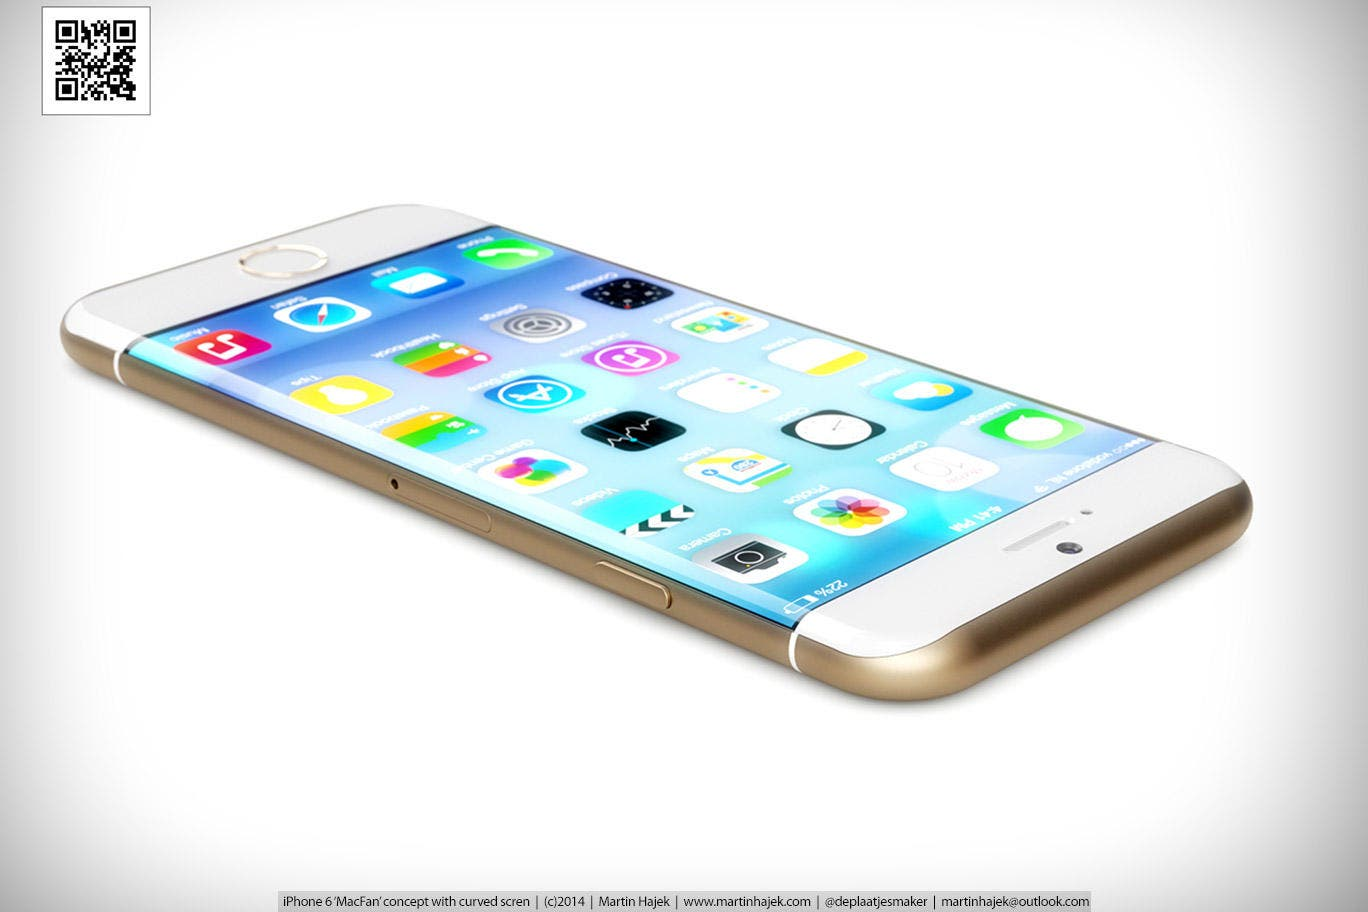 iPhone 6 Concept by Martin Hajek